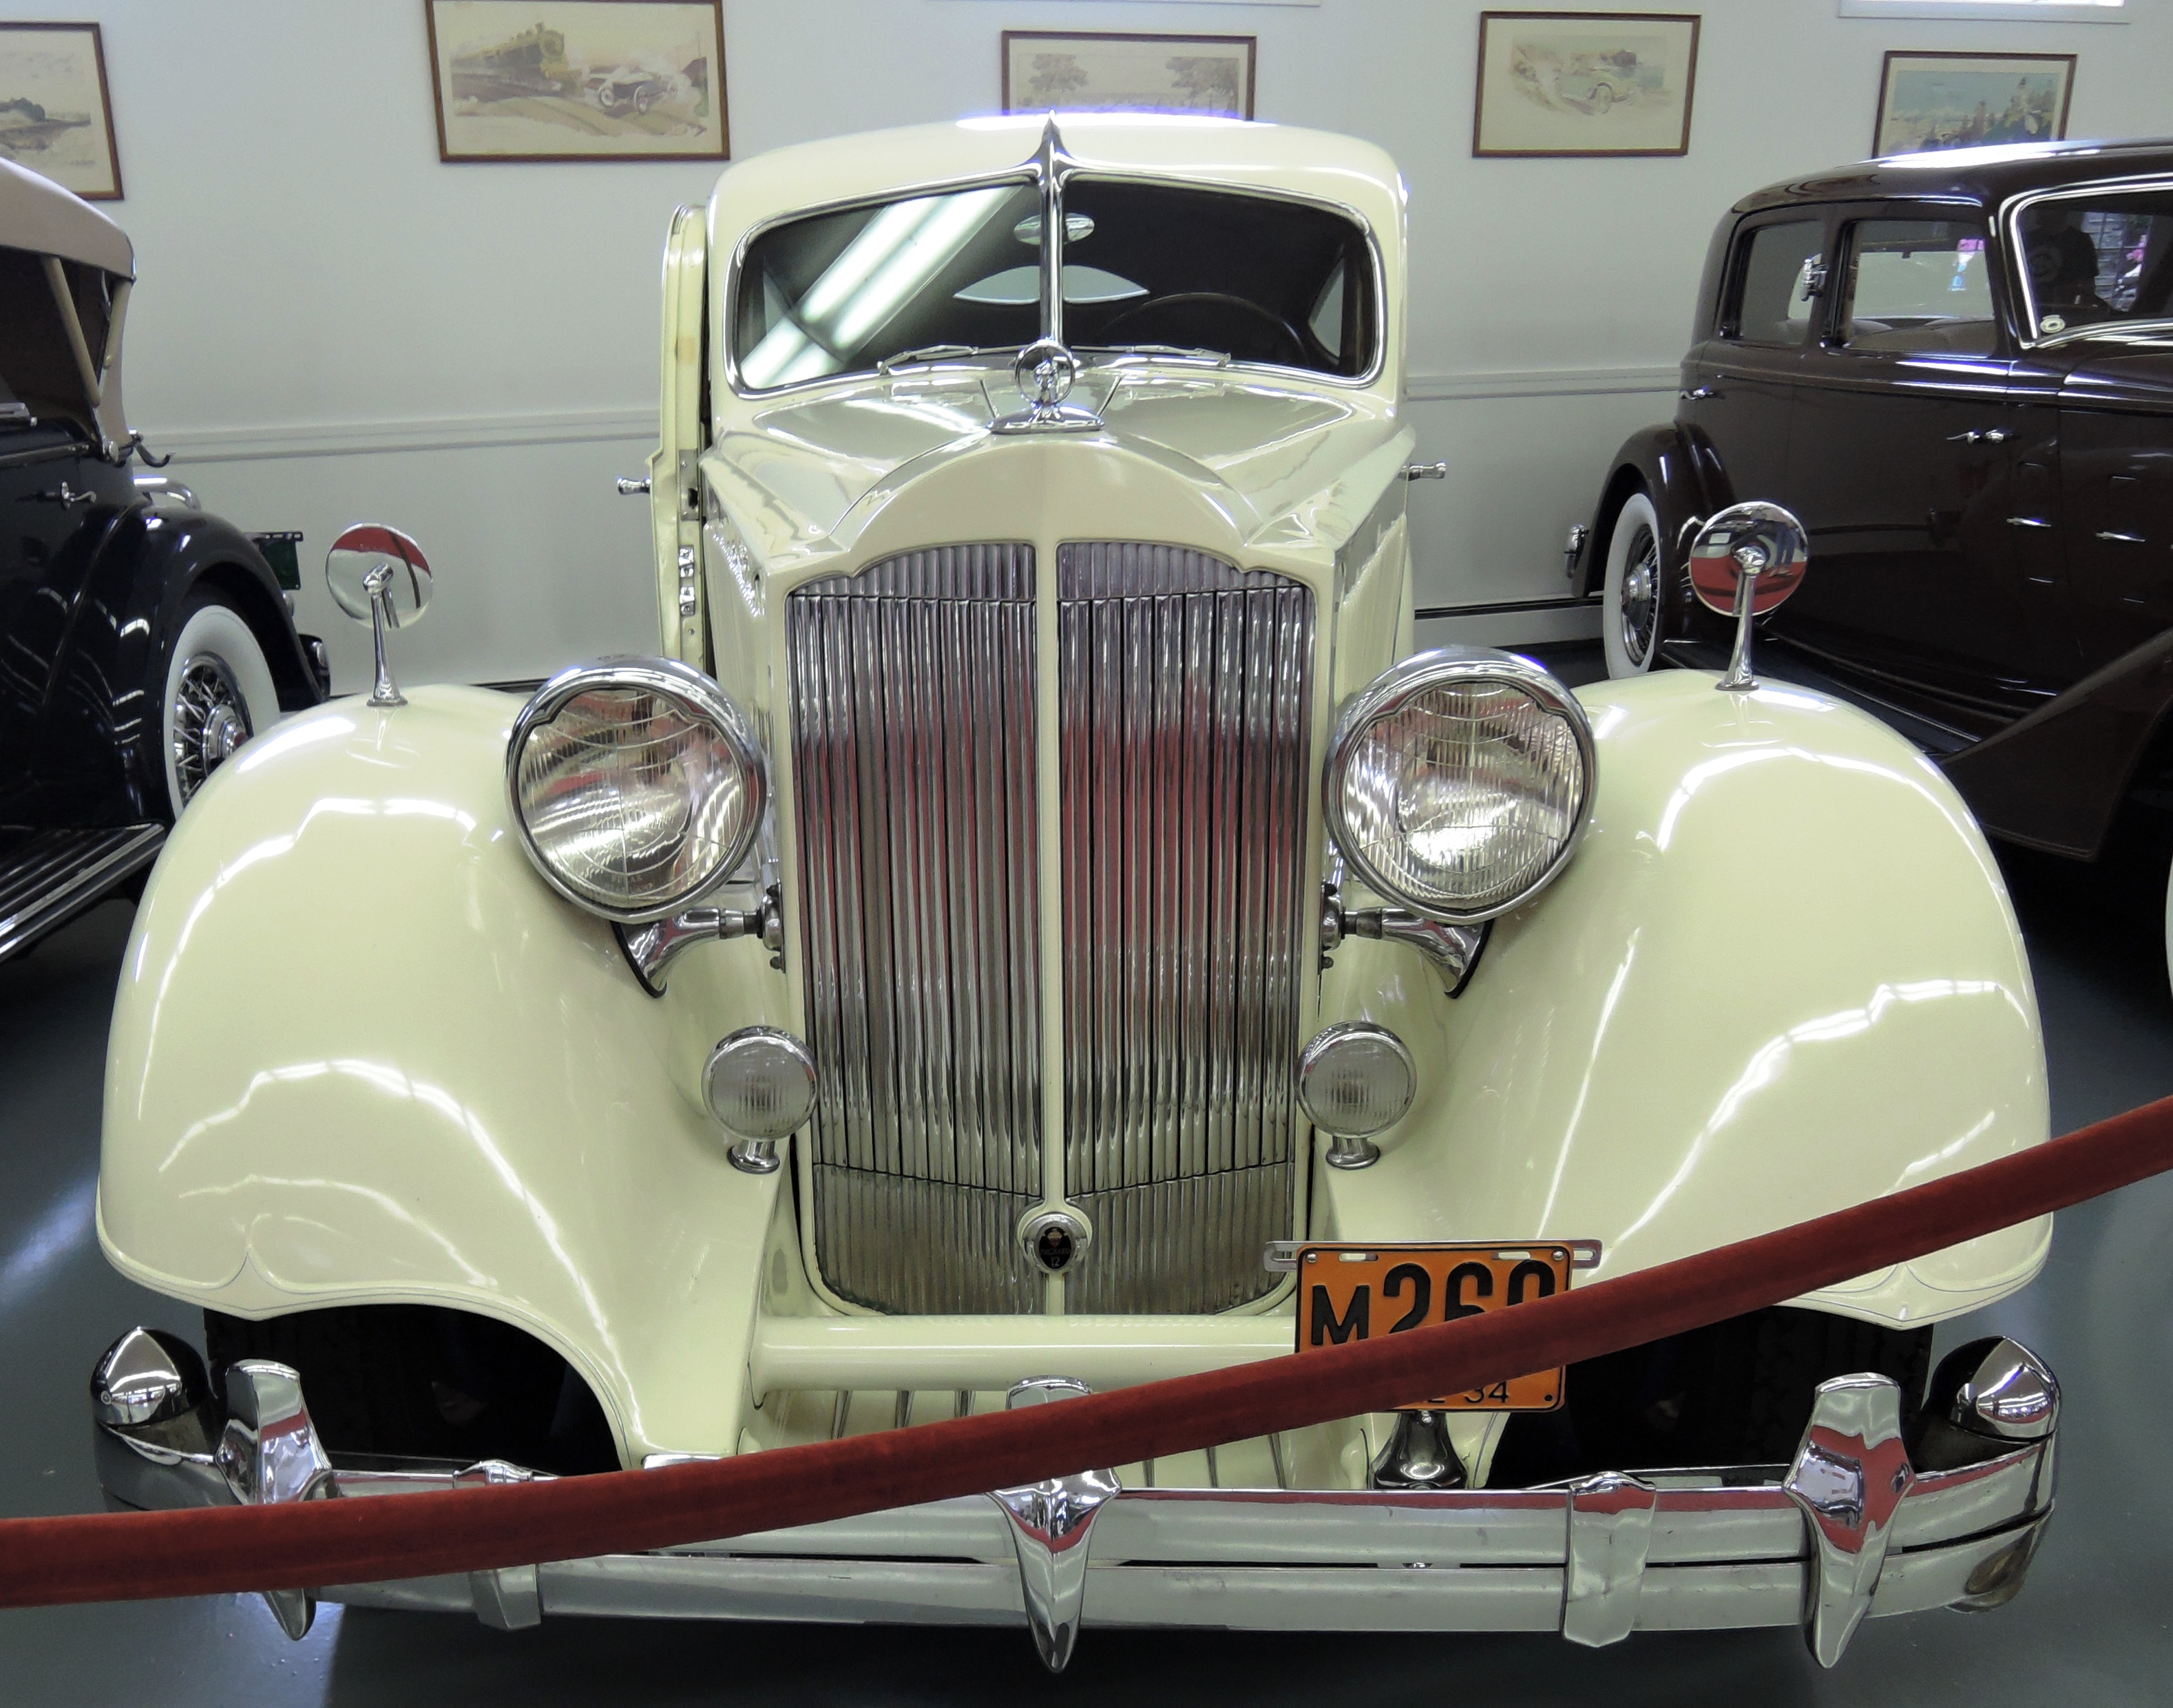 1934 Packard 1106 Twelve Sport Coupe with a custom body by LeBaron - bahre car collection